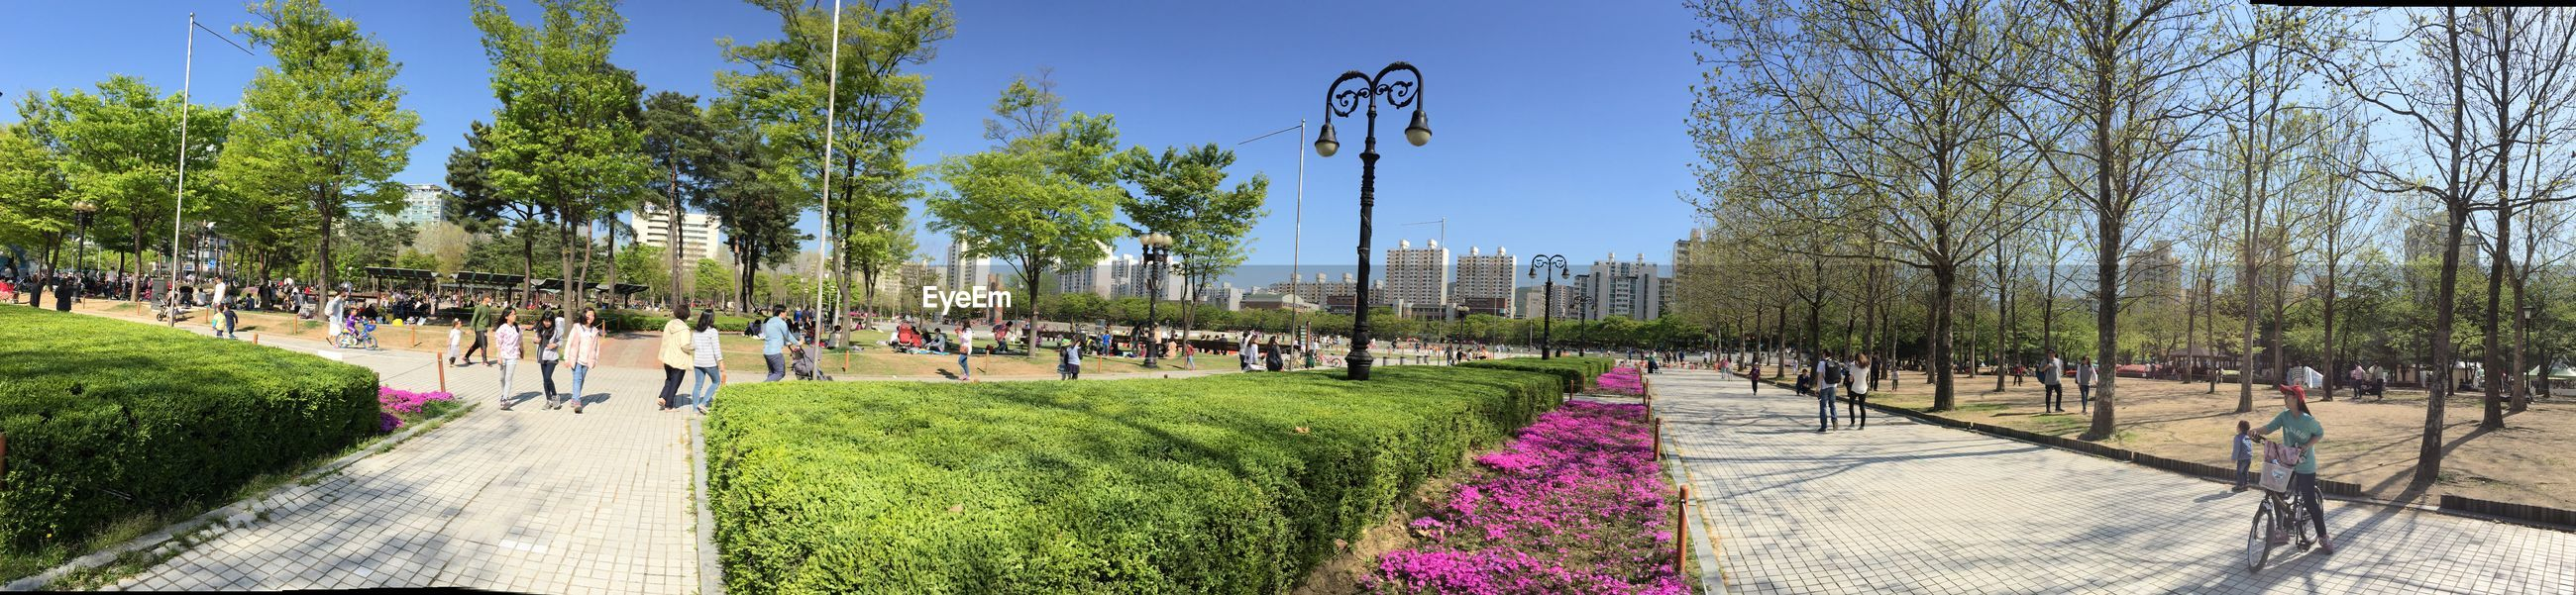 Panoramic view of pyeongchon central park